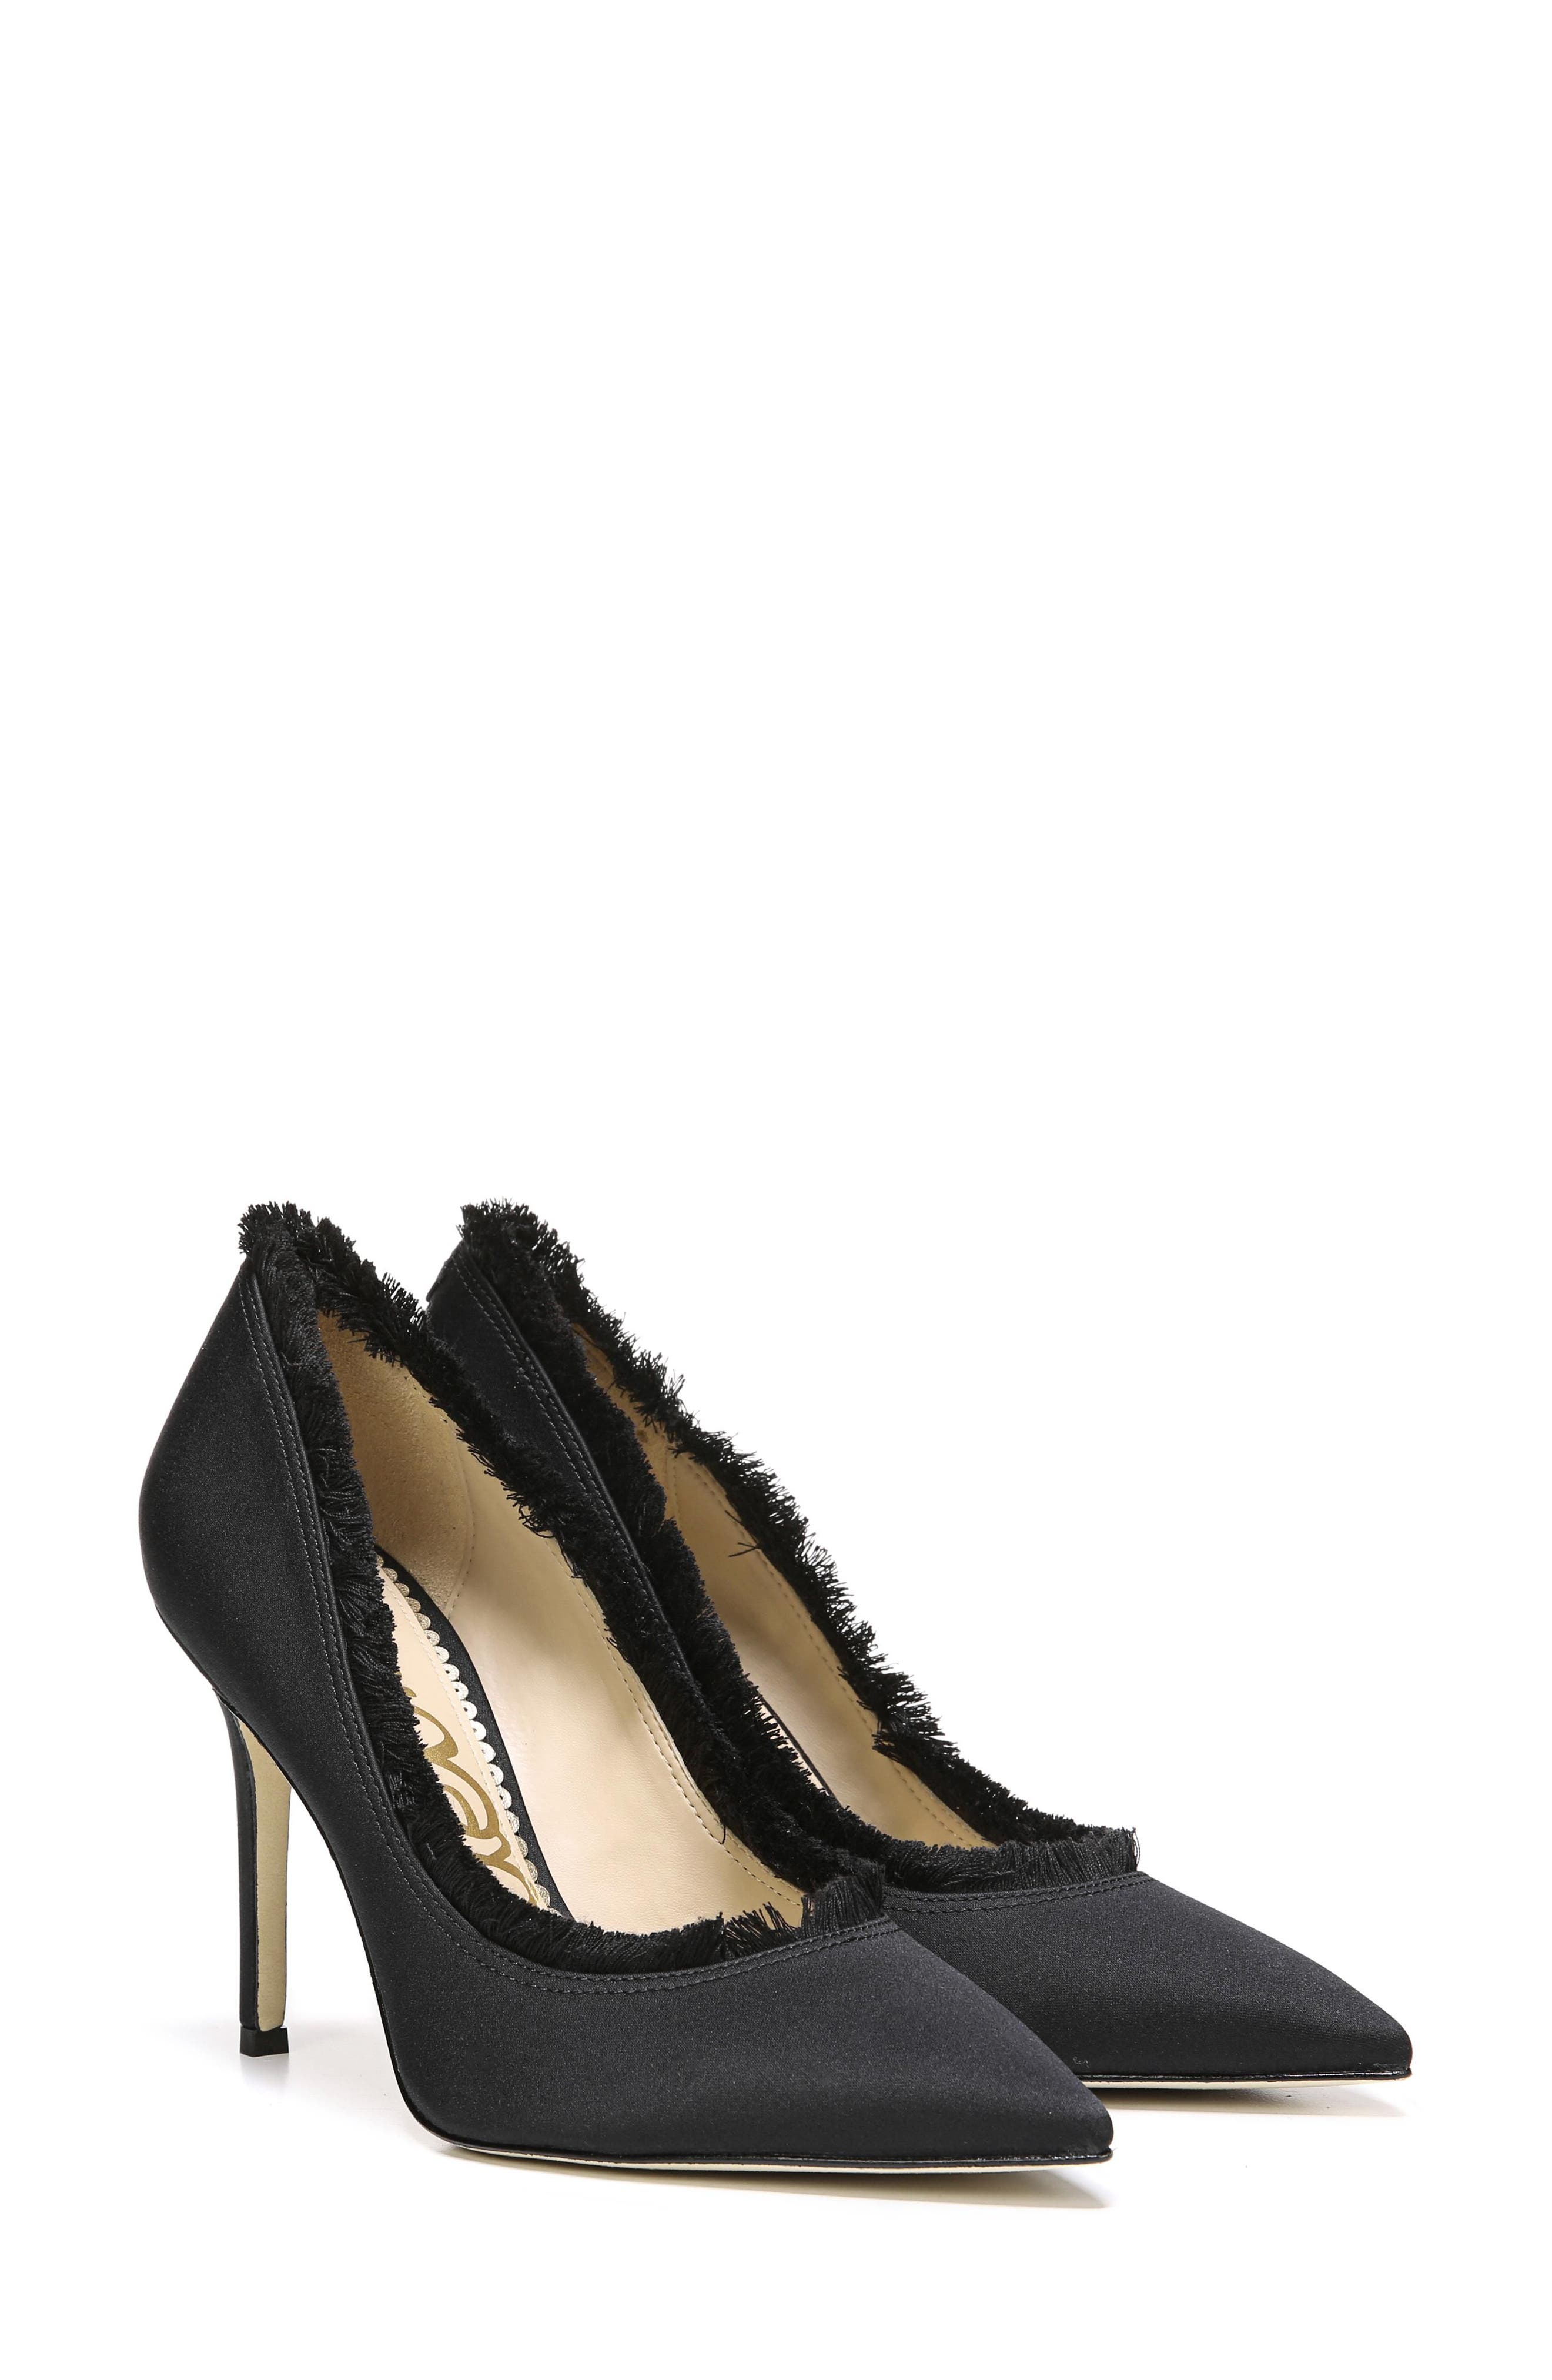 Halan Pointy Toe Pump,                             Alternate thumbnail 8, color,                             001